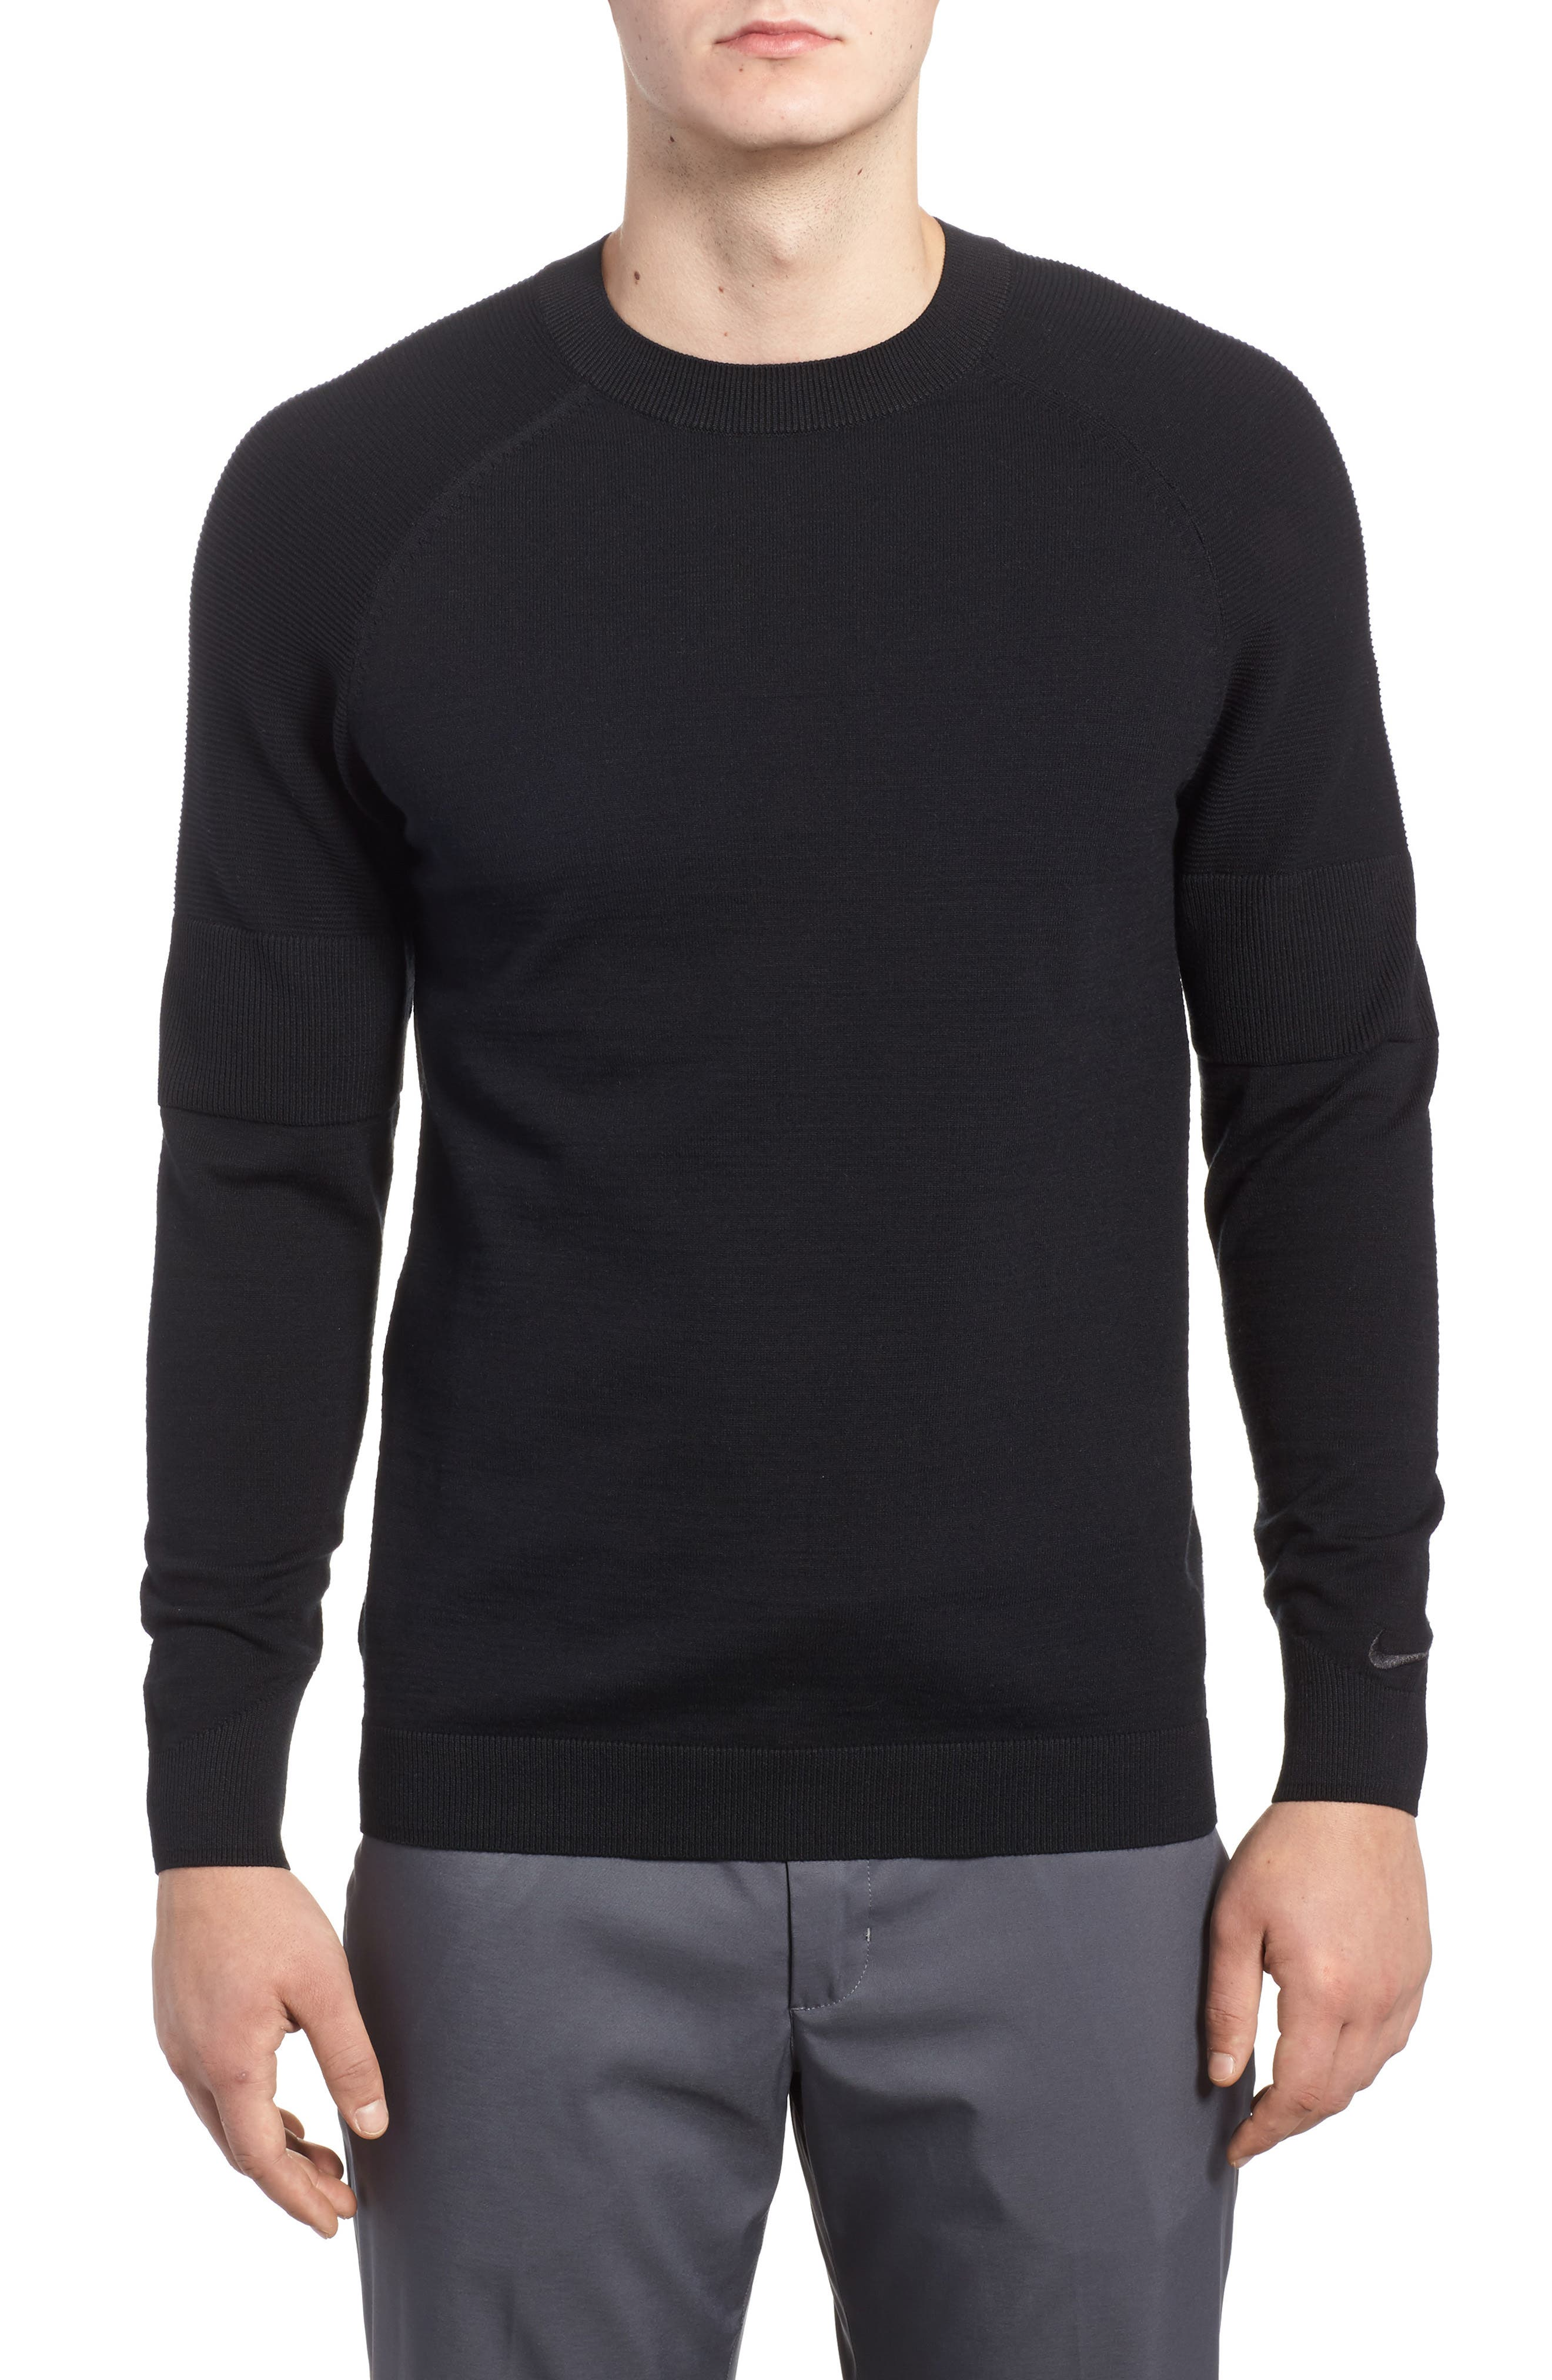 TW Cotton Blend Sweatshirt,                         Main,                         color,